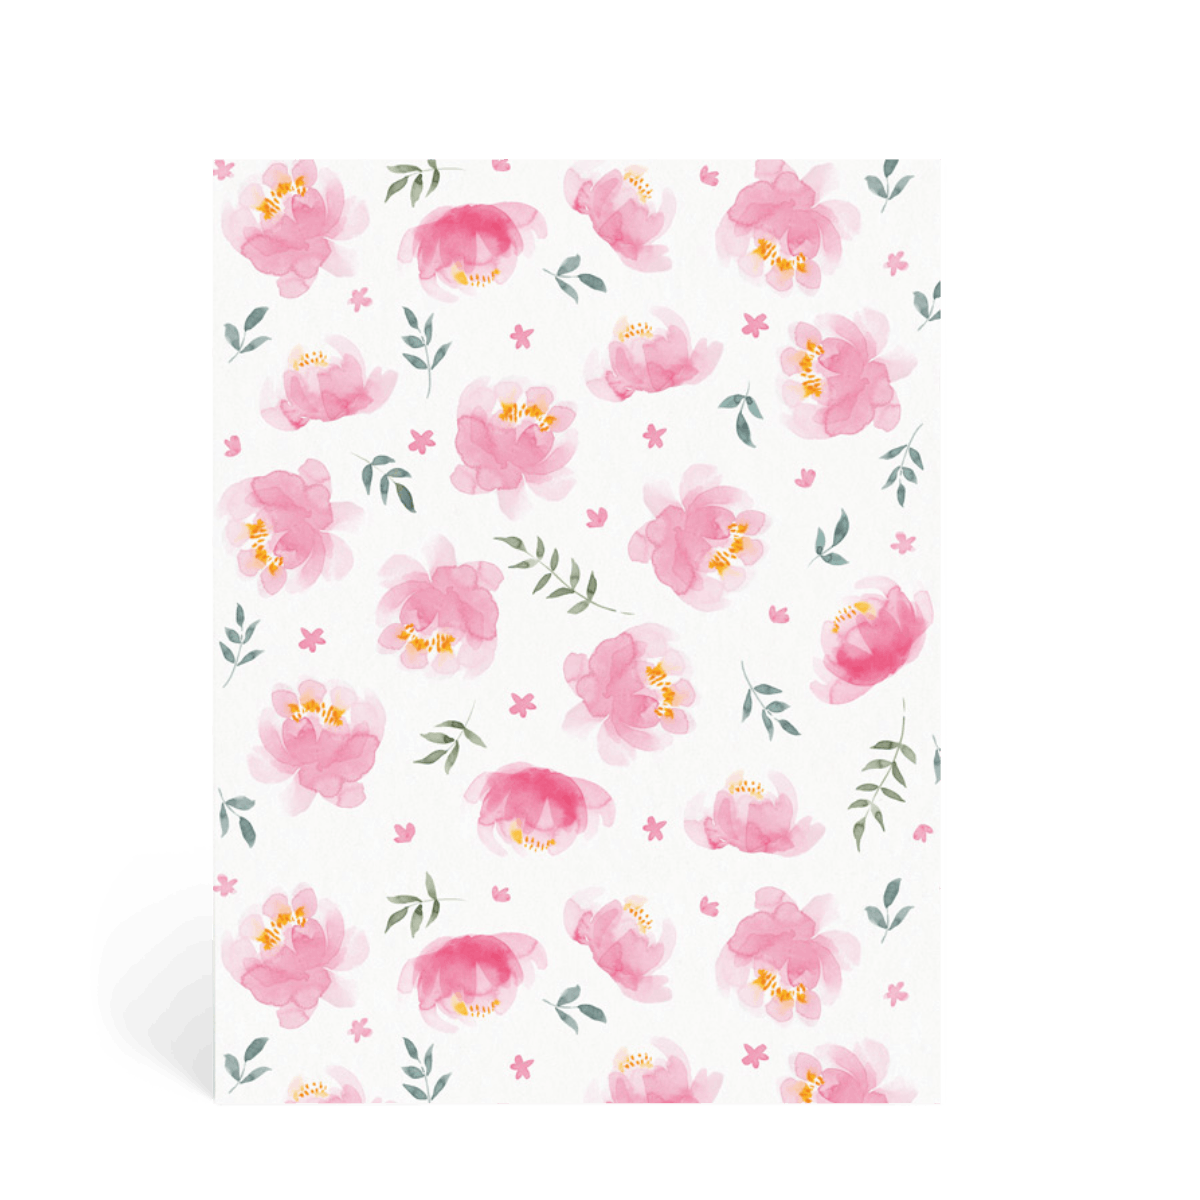 Https%3a%2f%2fwww.papier.com%2fproduct image%2f43199%2f31%2fpeonies 11009 back 1535989402.png?ixlib=rb 1.1